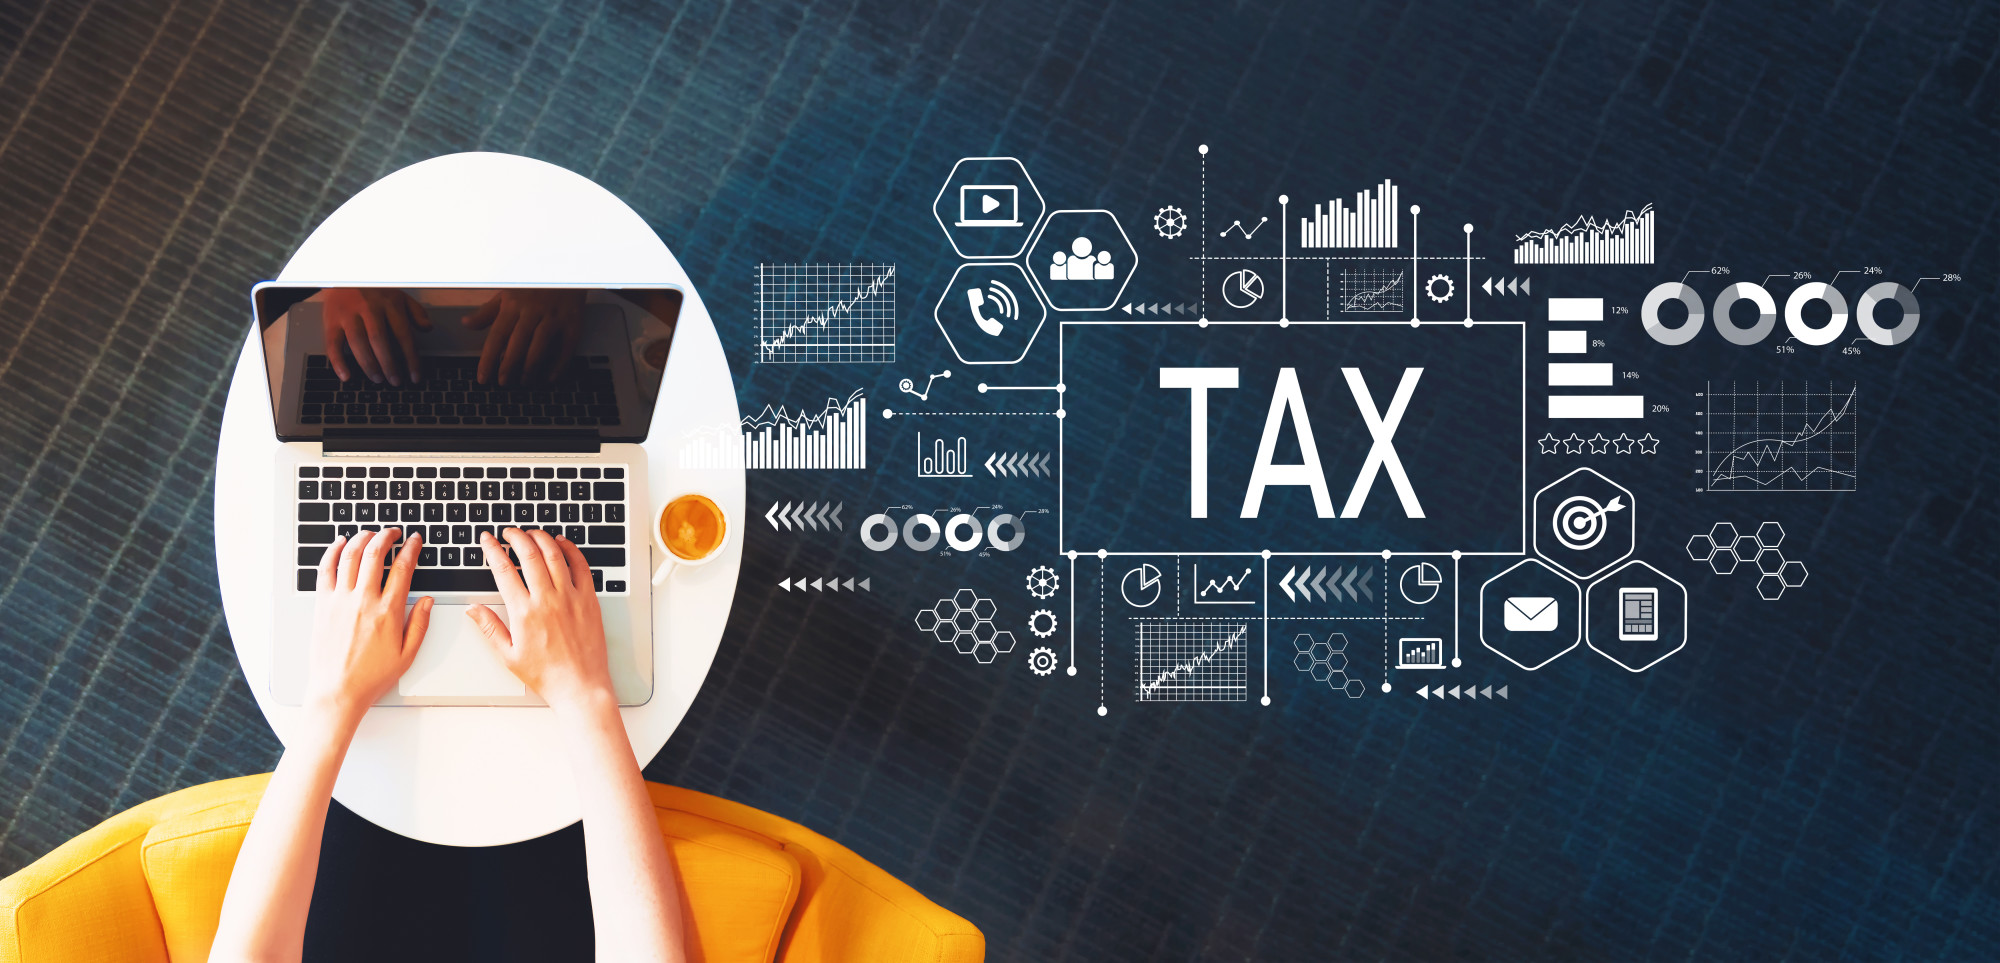 tax text and icons and person working on laptop